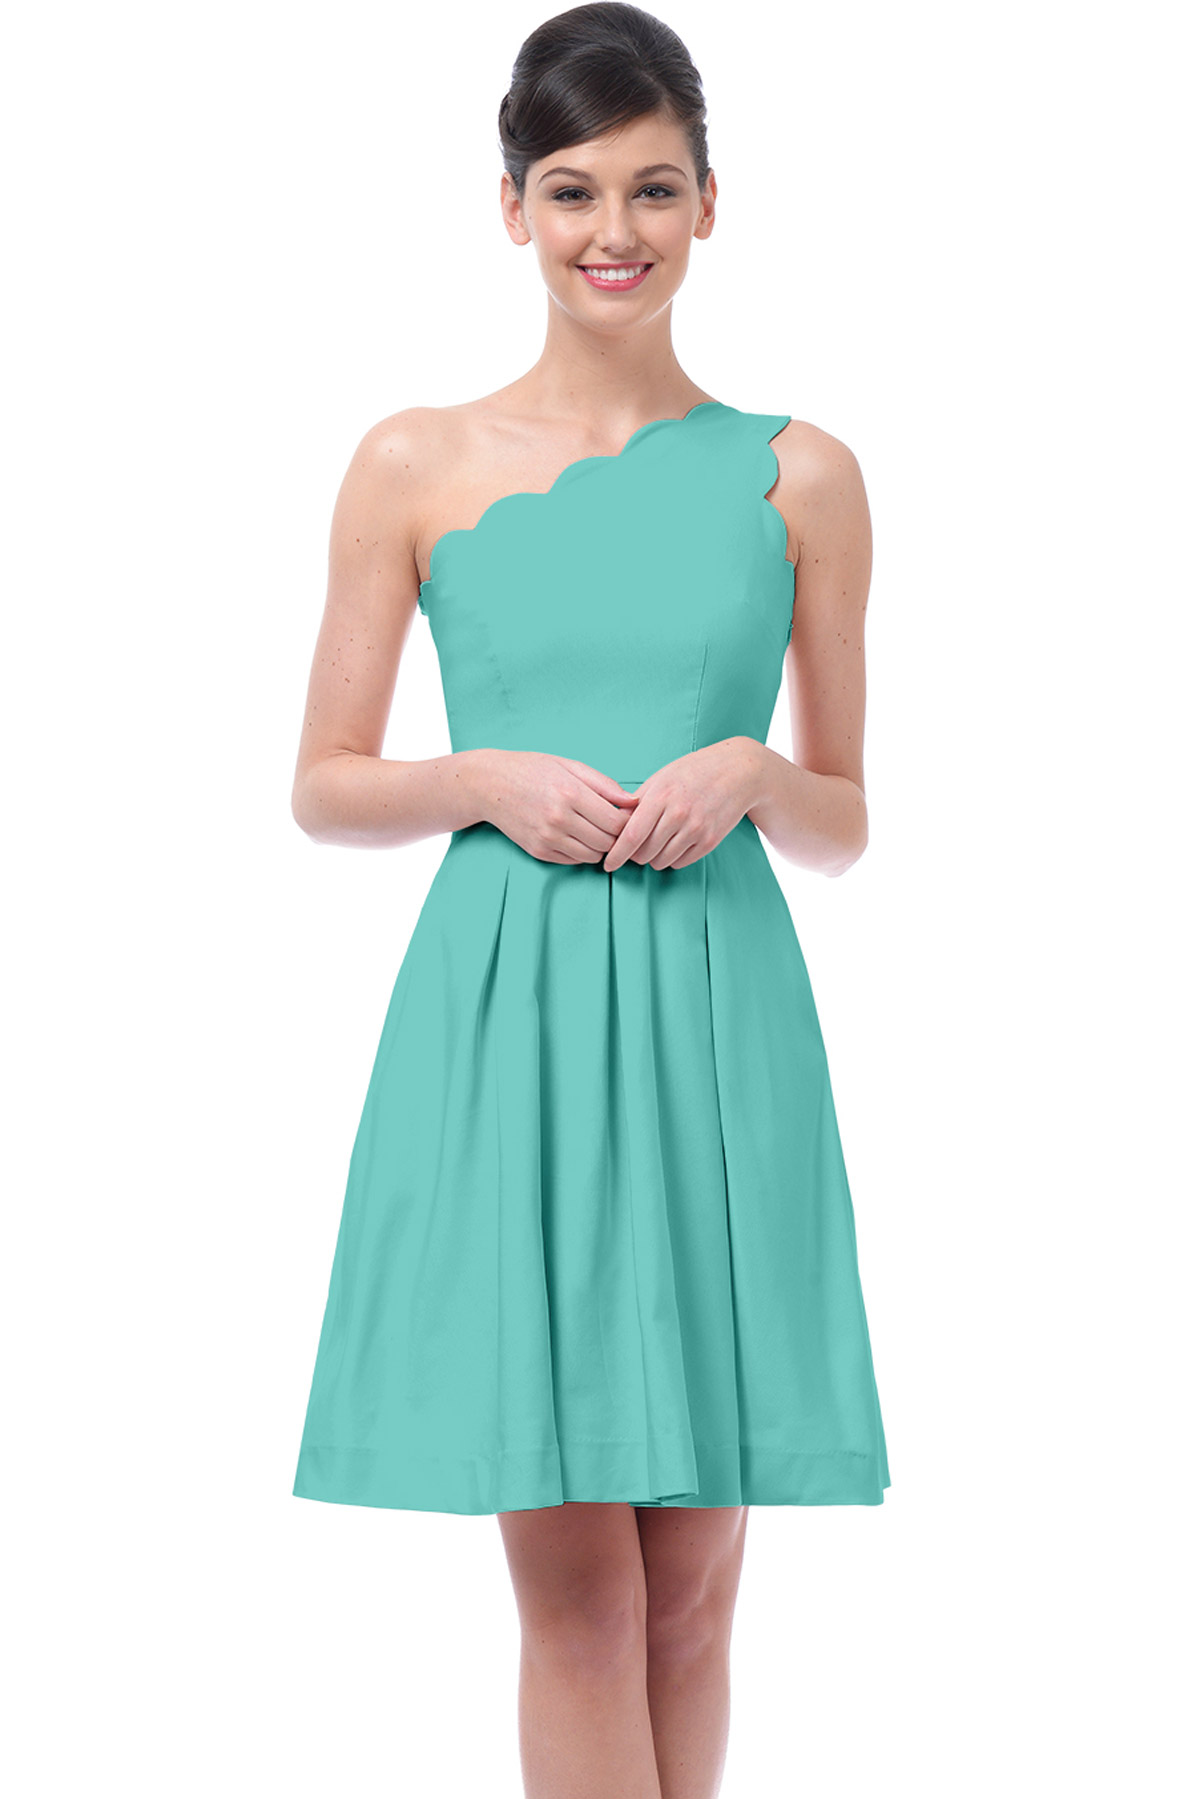 35 Figure-Friendly One Shoulder Bridesmaid Dresses - EverAfterGuide